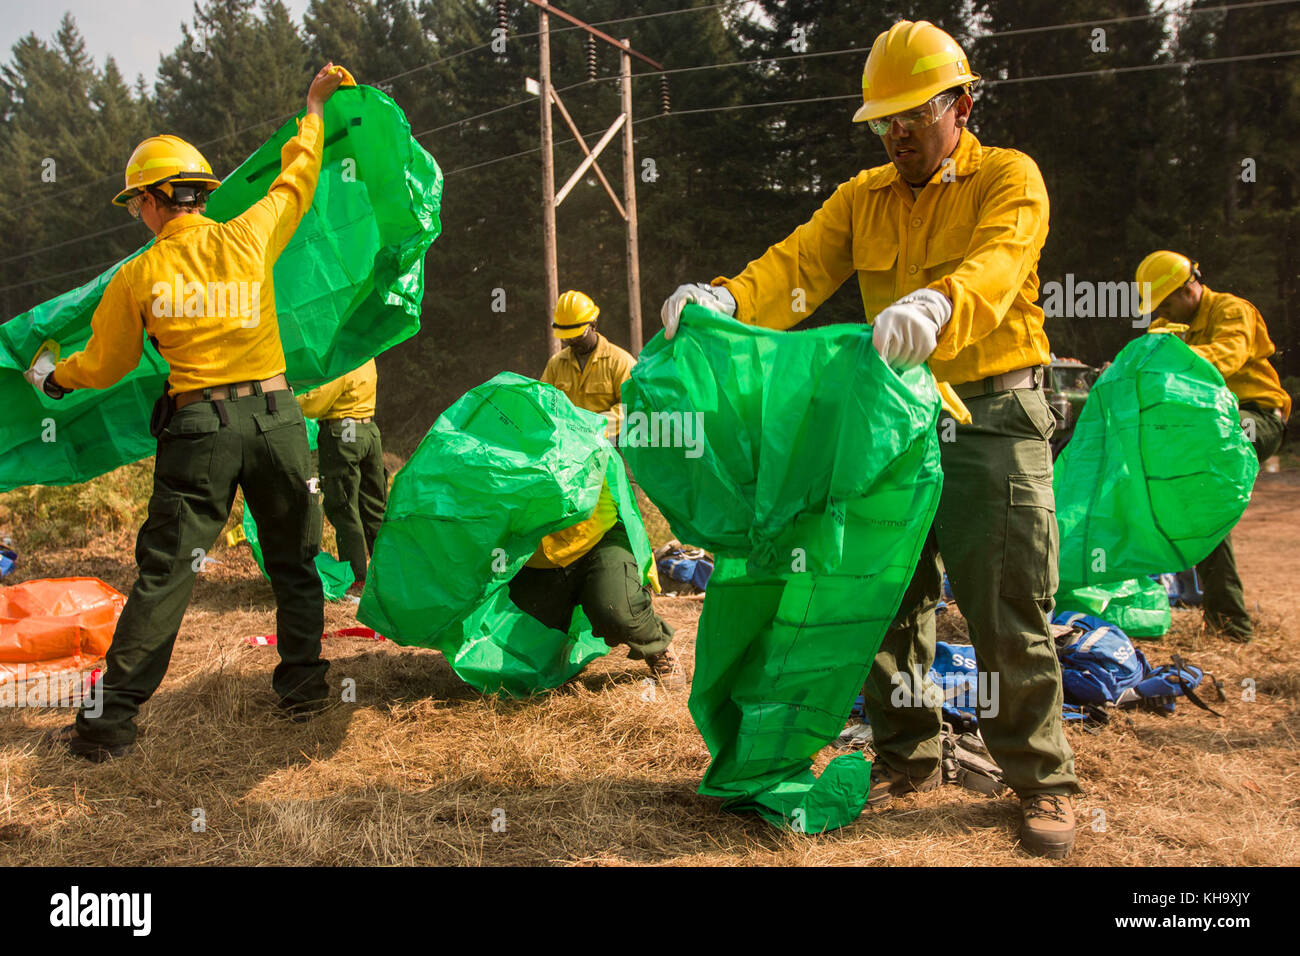 U.S. Army Soldiers, assigned to 23rd Brigade Engineer Battalion, 1-2 Stryker Brigade Combat Team, complete initial tactical training with civilian firefighters working with the U.S. Forest Service in the Umpqua National Forest, Umpqua North Complex, Oregon, Sept. 8. The Soldiers practiced deploying emergency fire shelters. A fire shelter is a wild firefighter's last line of defense, and is made of an outer layer of aluminum foil that reflects heat away from the shelter. (U.S. Army photos by Pvt. Adeline Witherspoon, 20th Public Affairs Detachment) Stock Photo